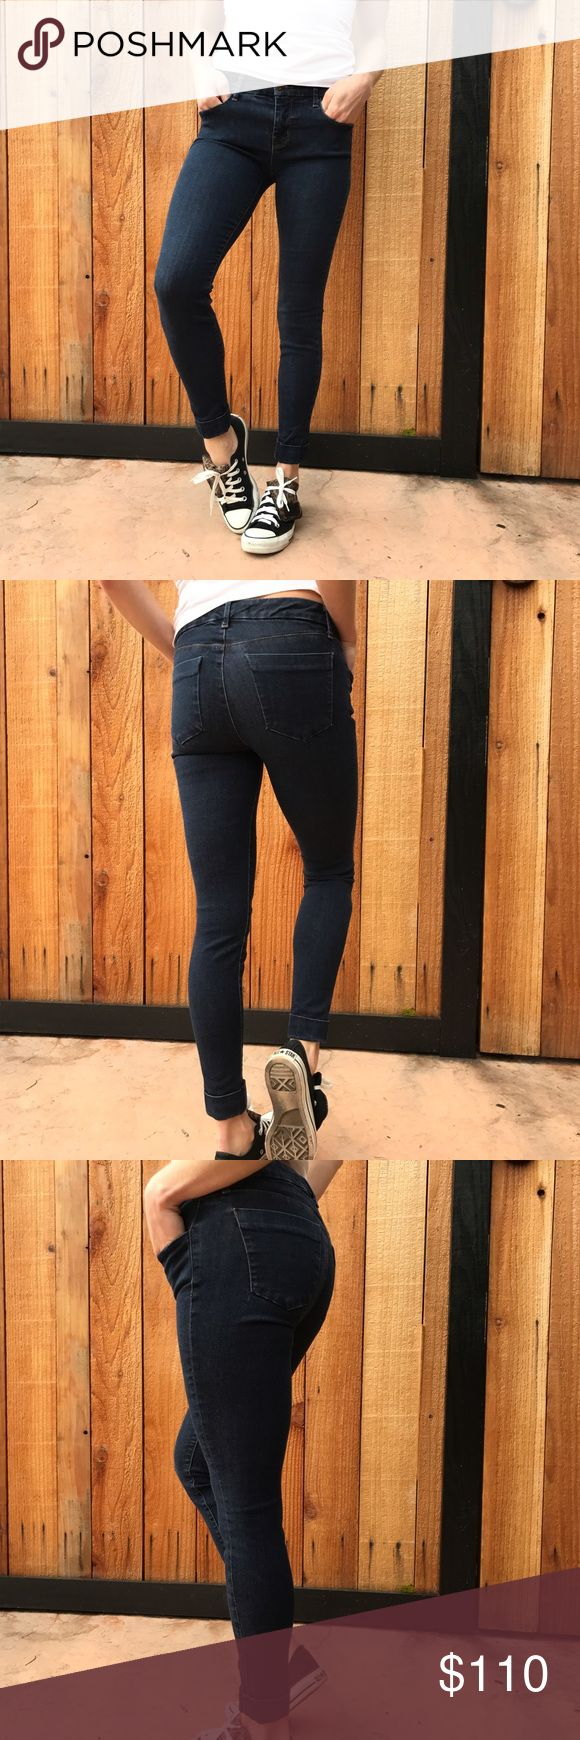 J Brand Rolled Jeans Super stretchy rolled cropped jeans. Measurements upon request J Brand Jeans Ankle & Cropped